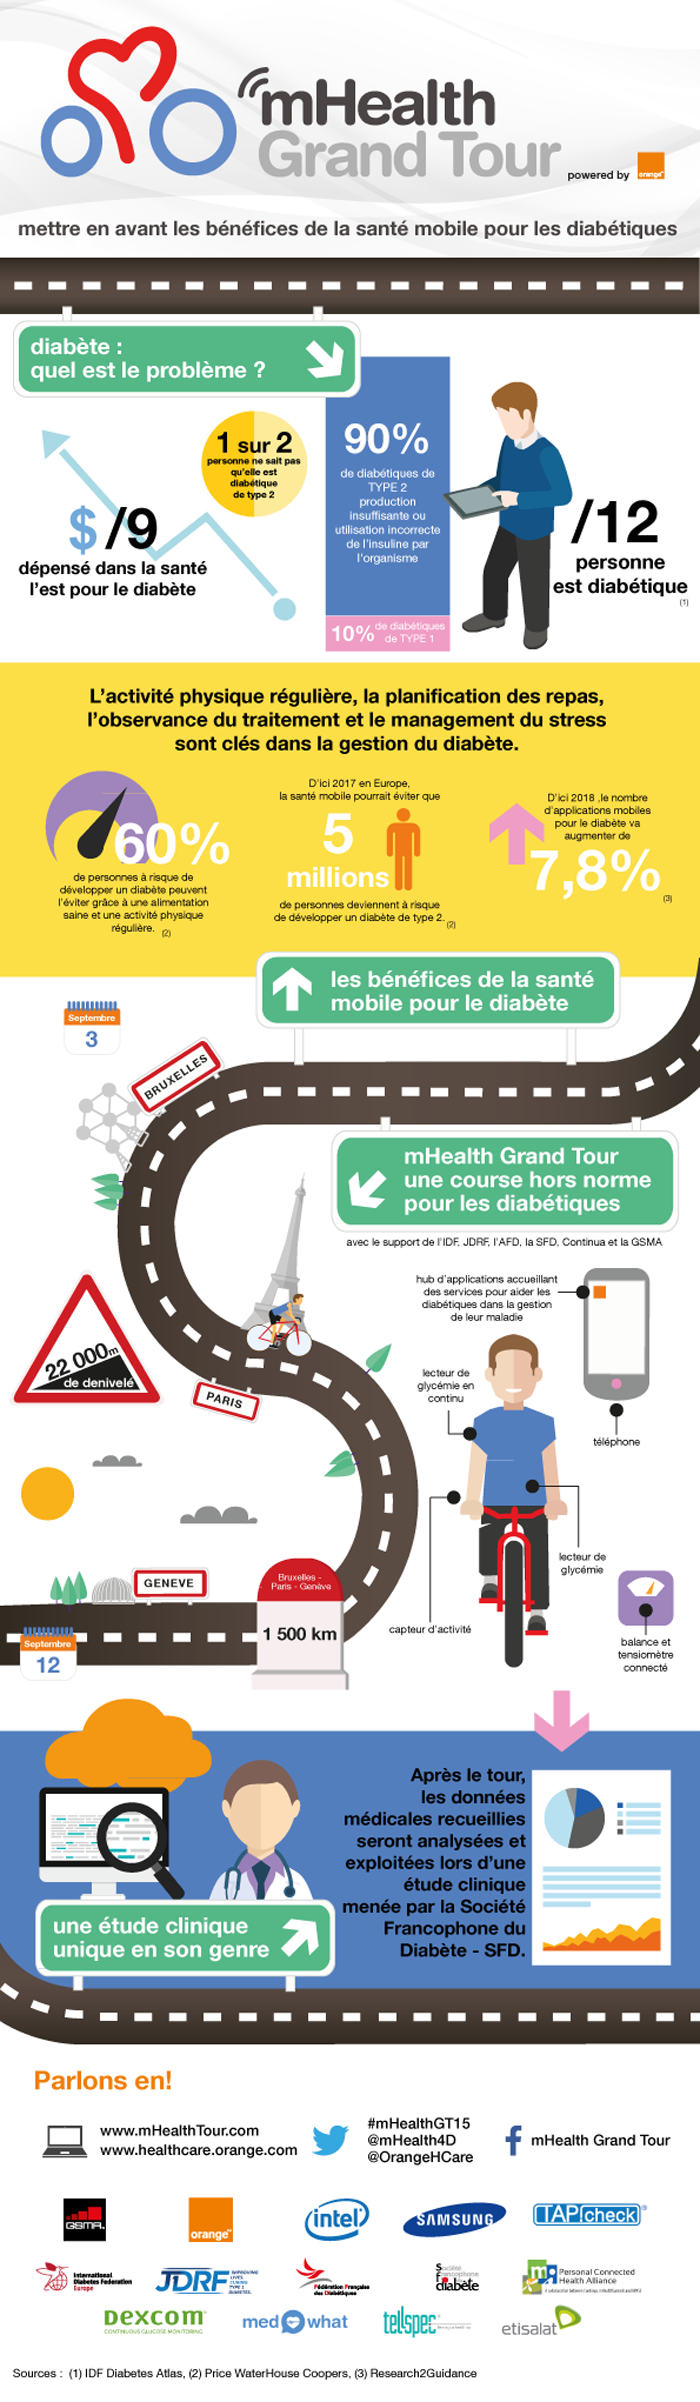 infographie-mhealth-grand-tour